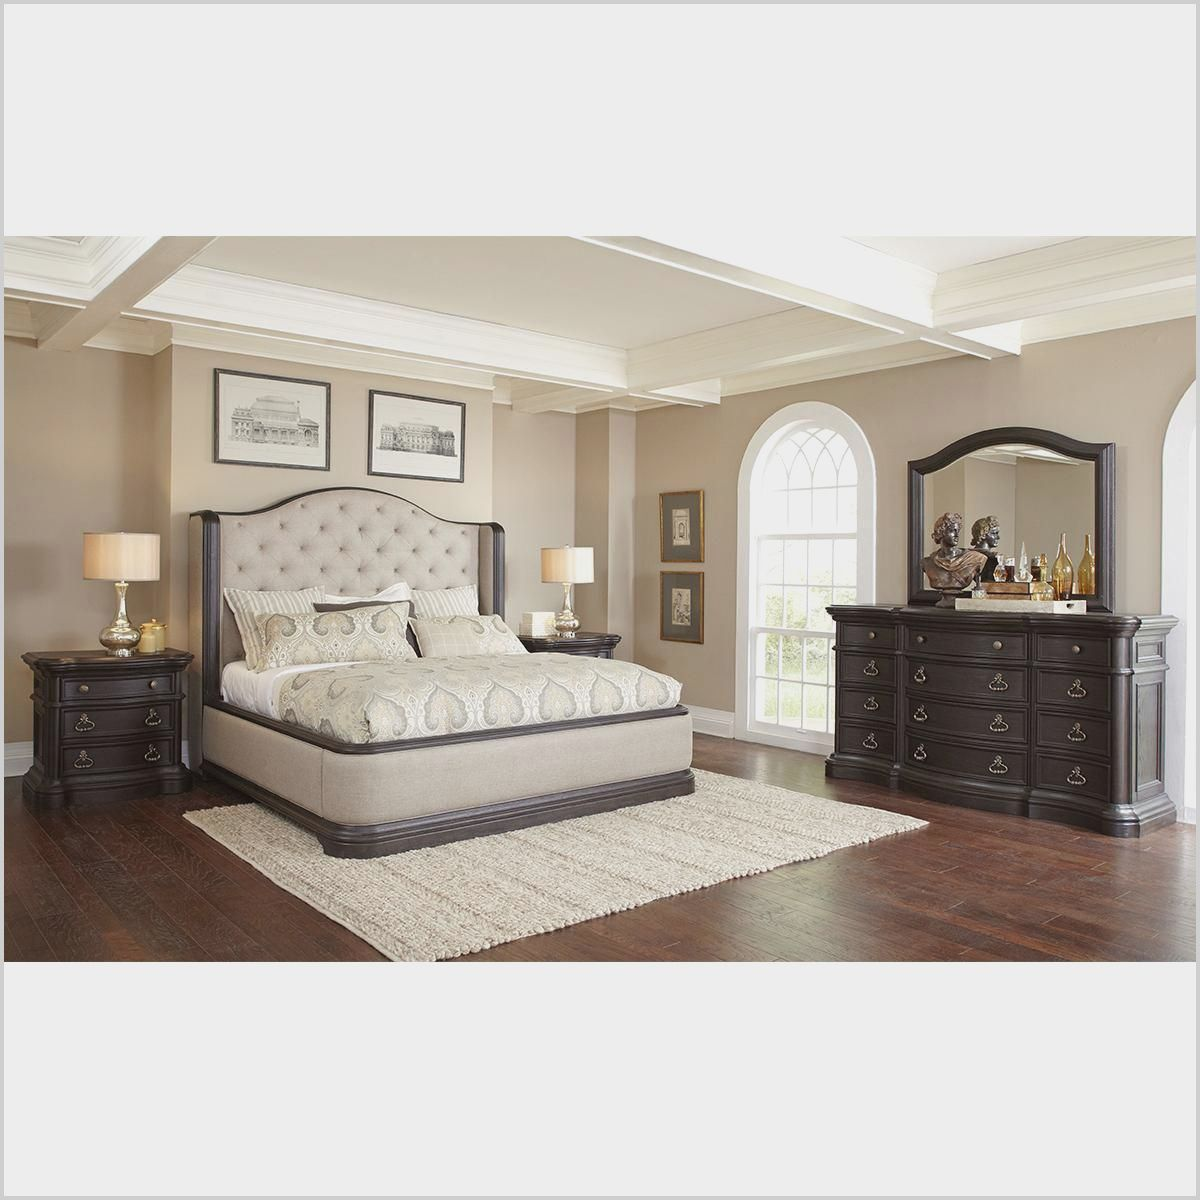 Pulaski Furniture White Bedroom Furniture In 2020 Modern Bedroom